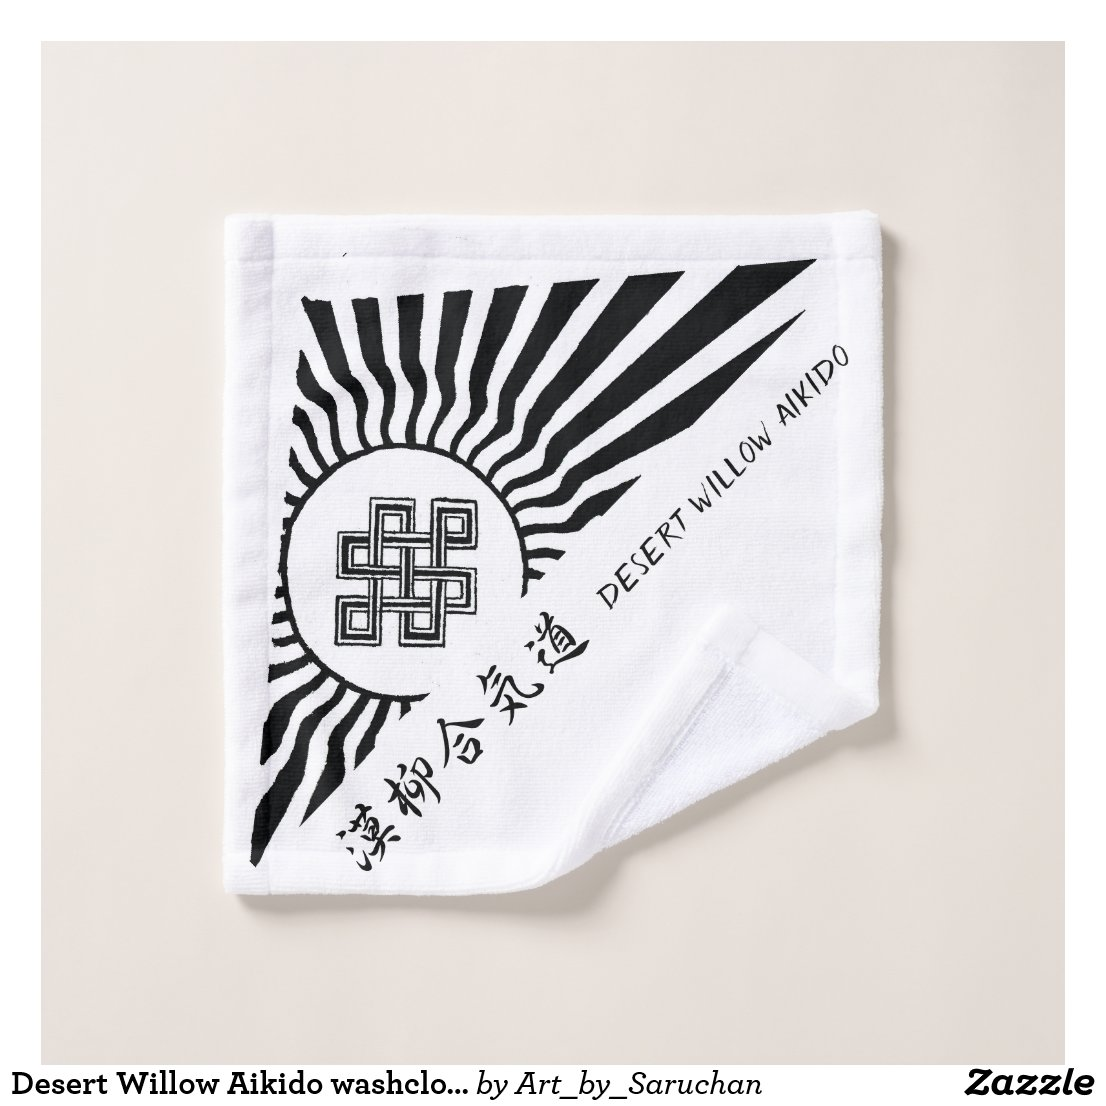 Desert Willow Aikido washcloth